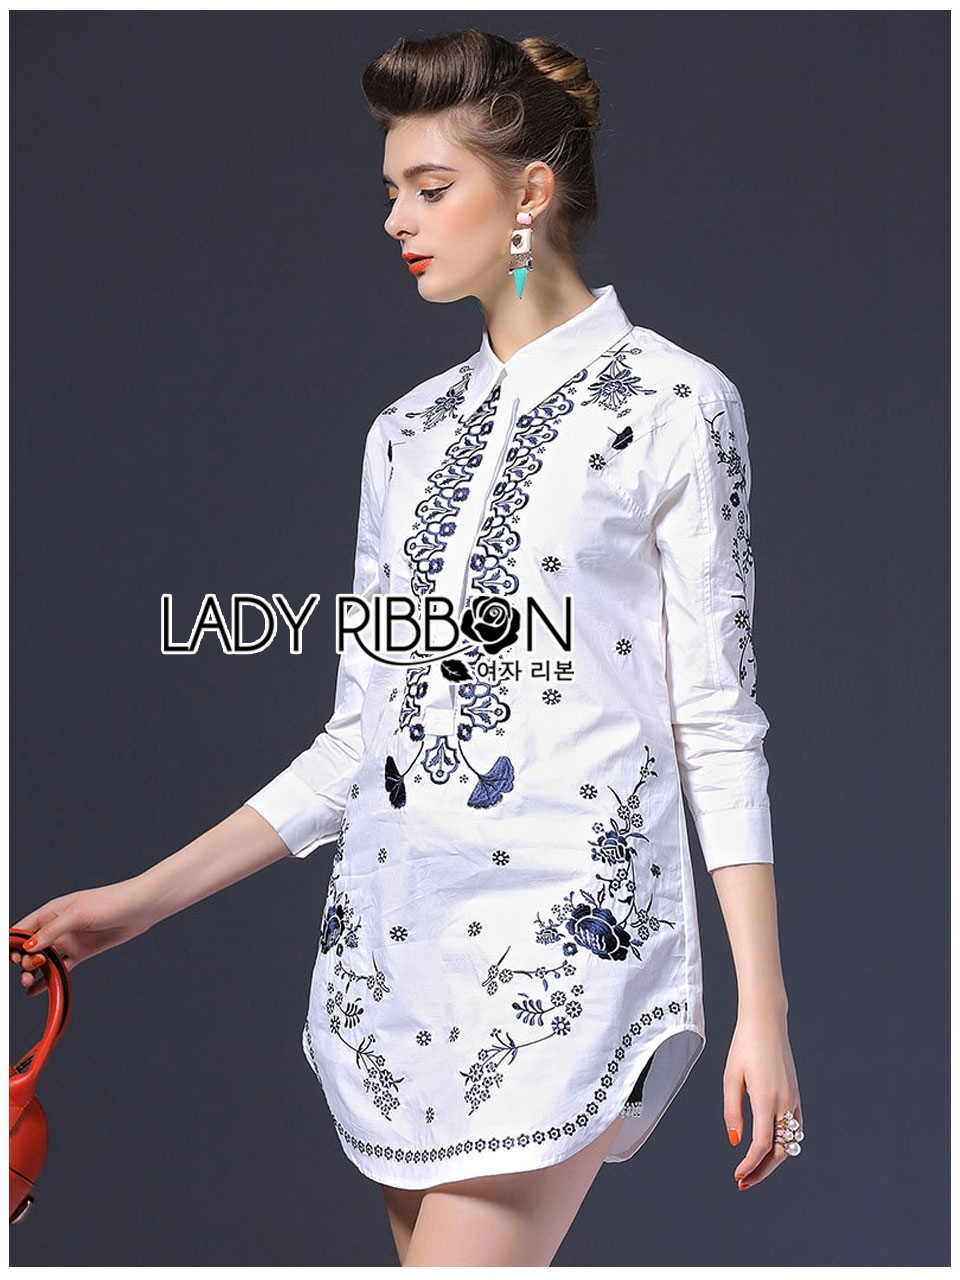 Lady Ribbon's Made Lady Annie Smart Casual Monochrome Embroidered Shirt Dress สีขาว